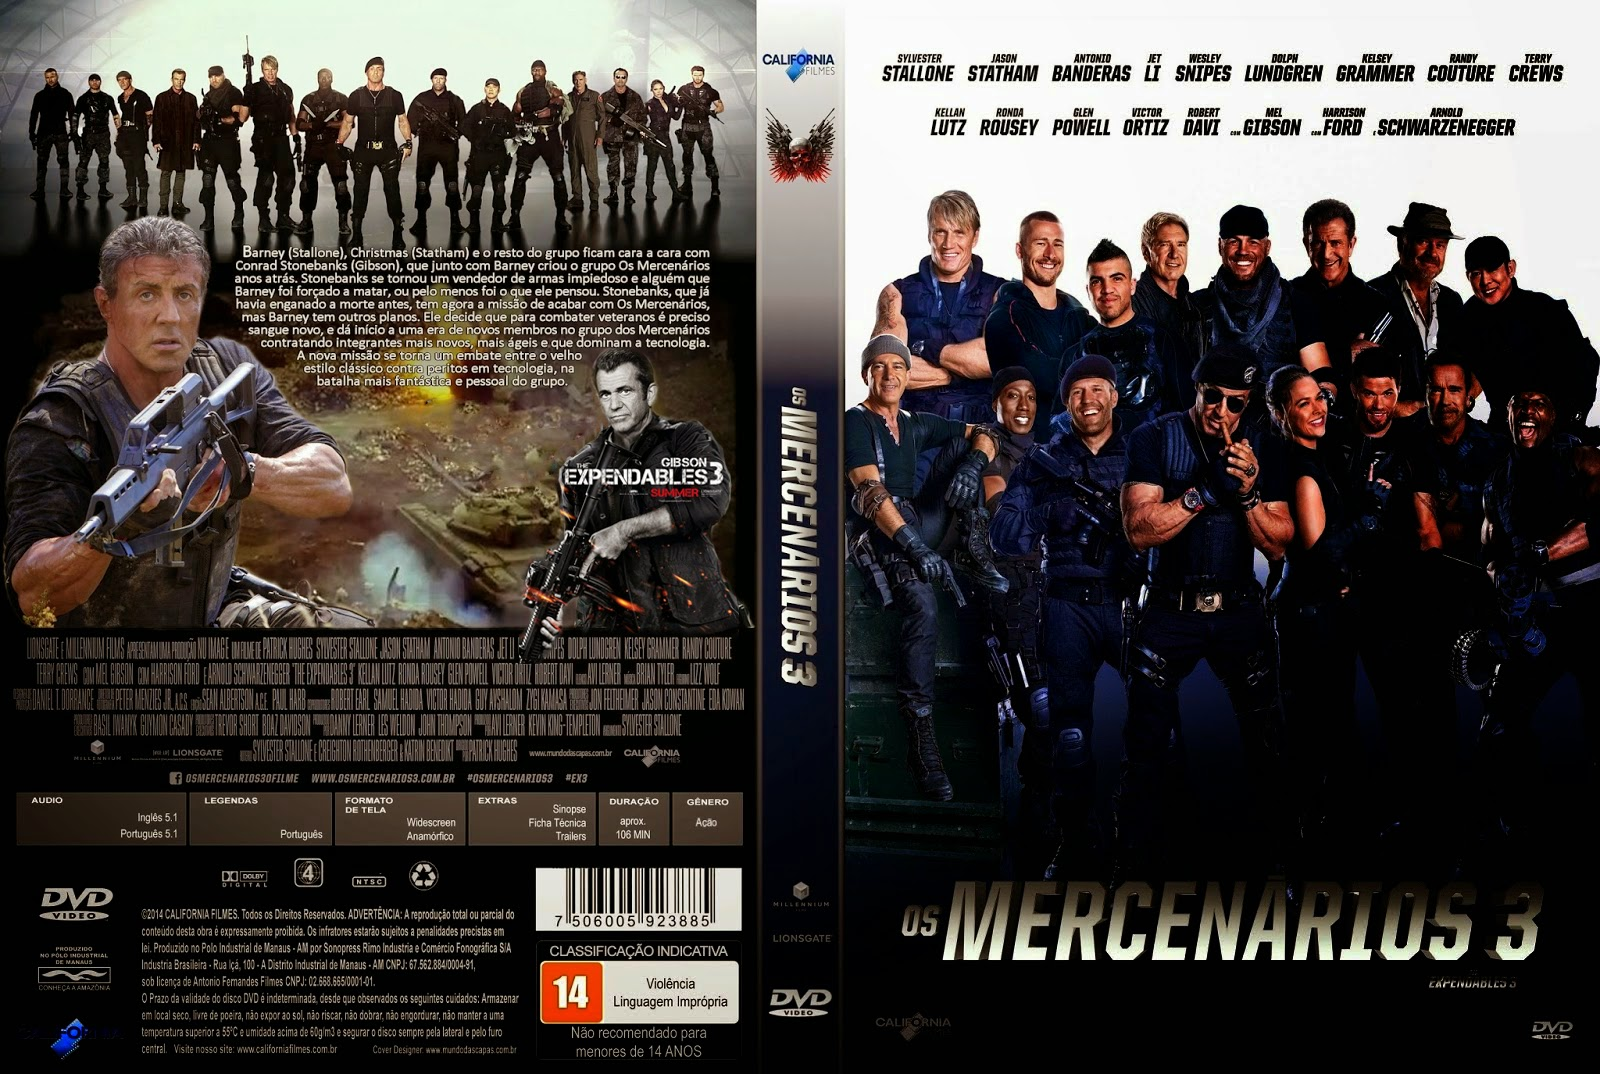 Os mercenários 3 (The expendables 3) BRrip + legenda Torrent